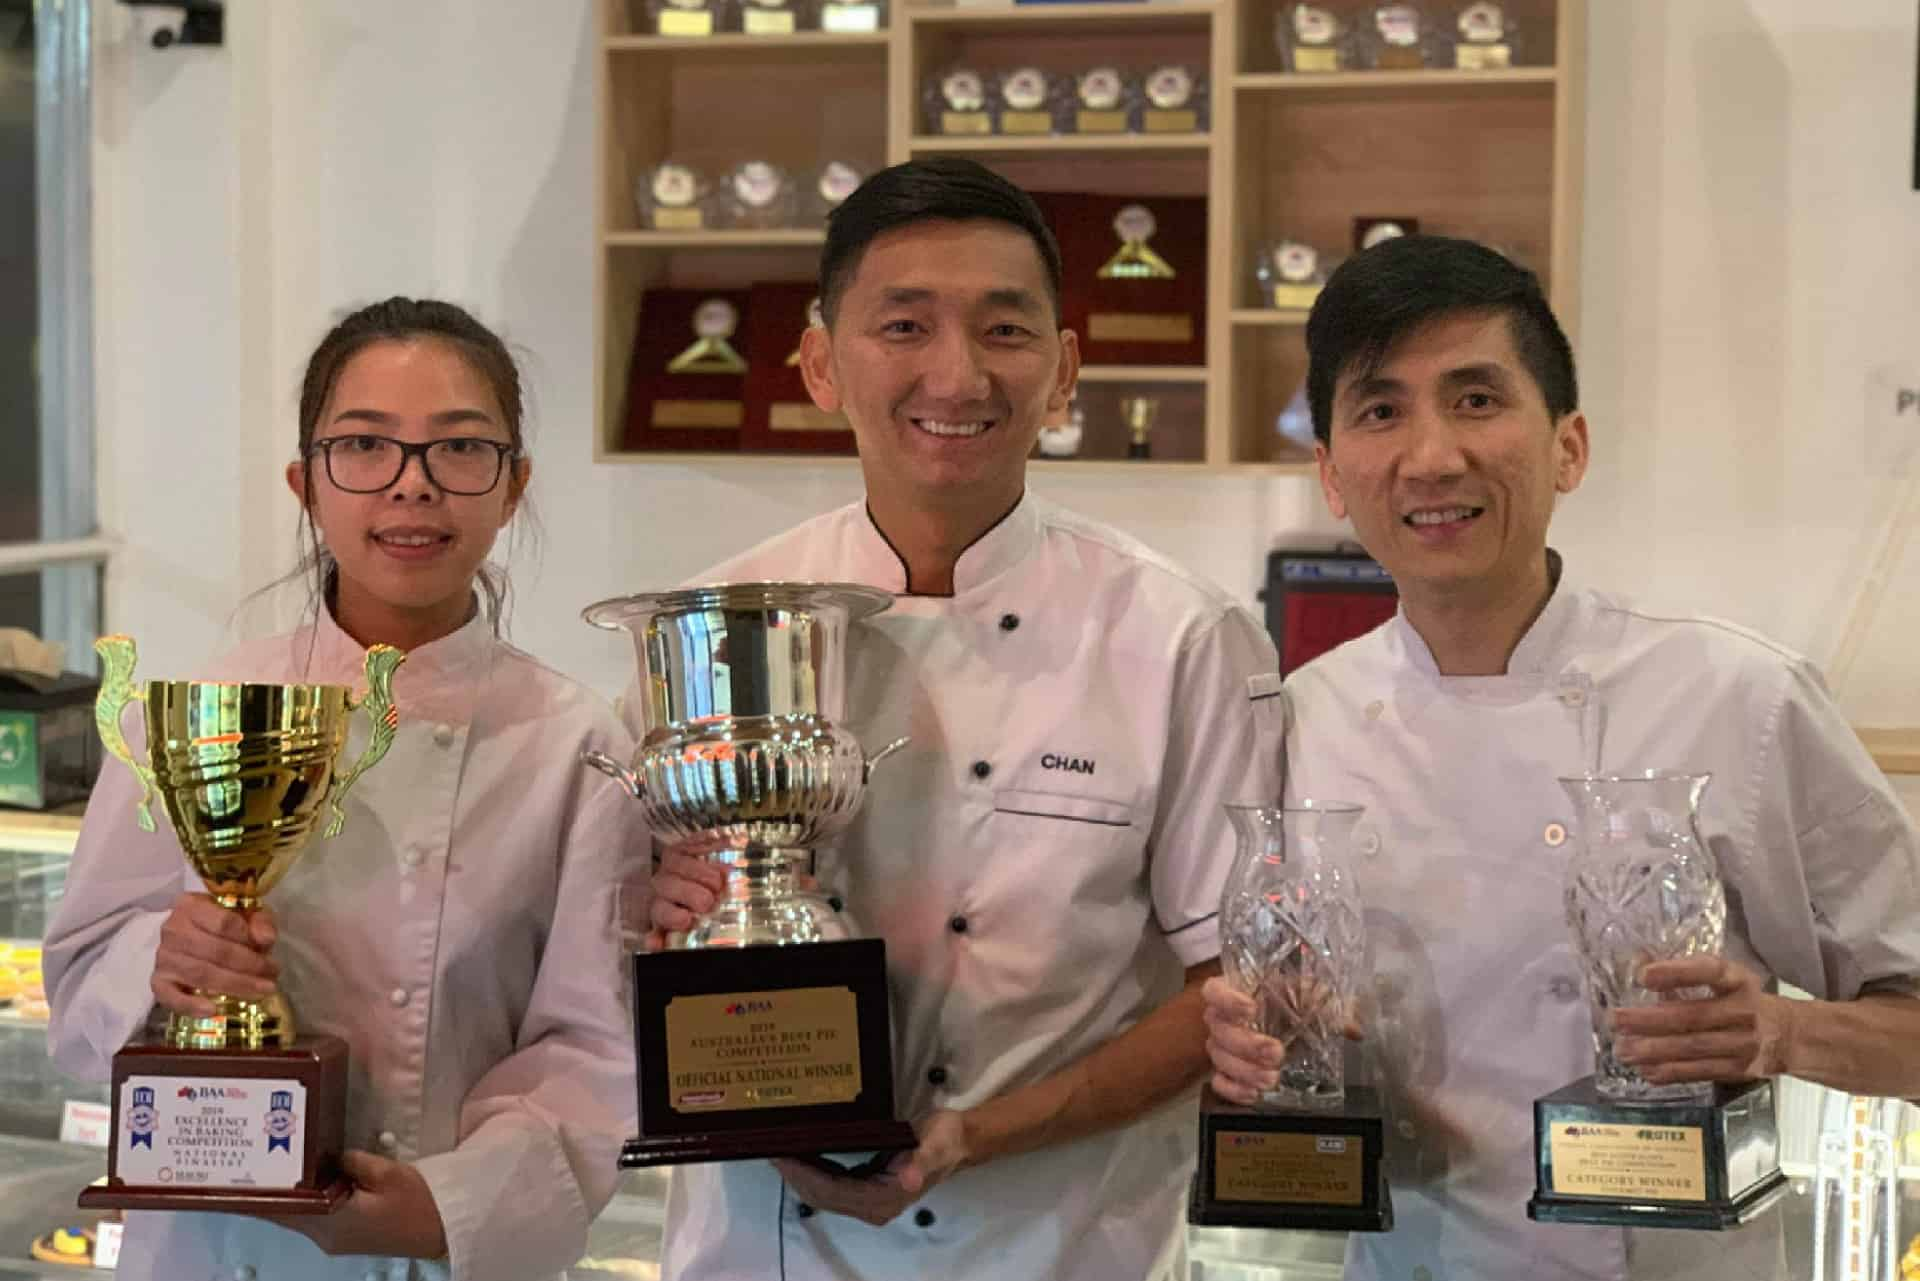 Q&A with Ryan Khun of Country Cob Bakery, winner of Australia's Best Pie 2 years running